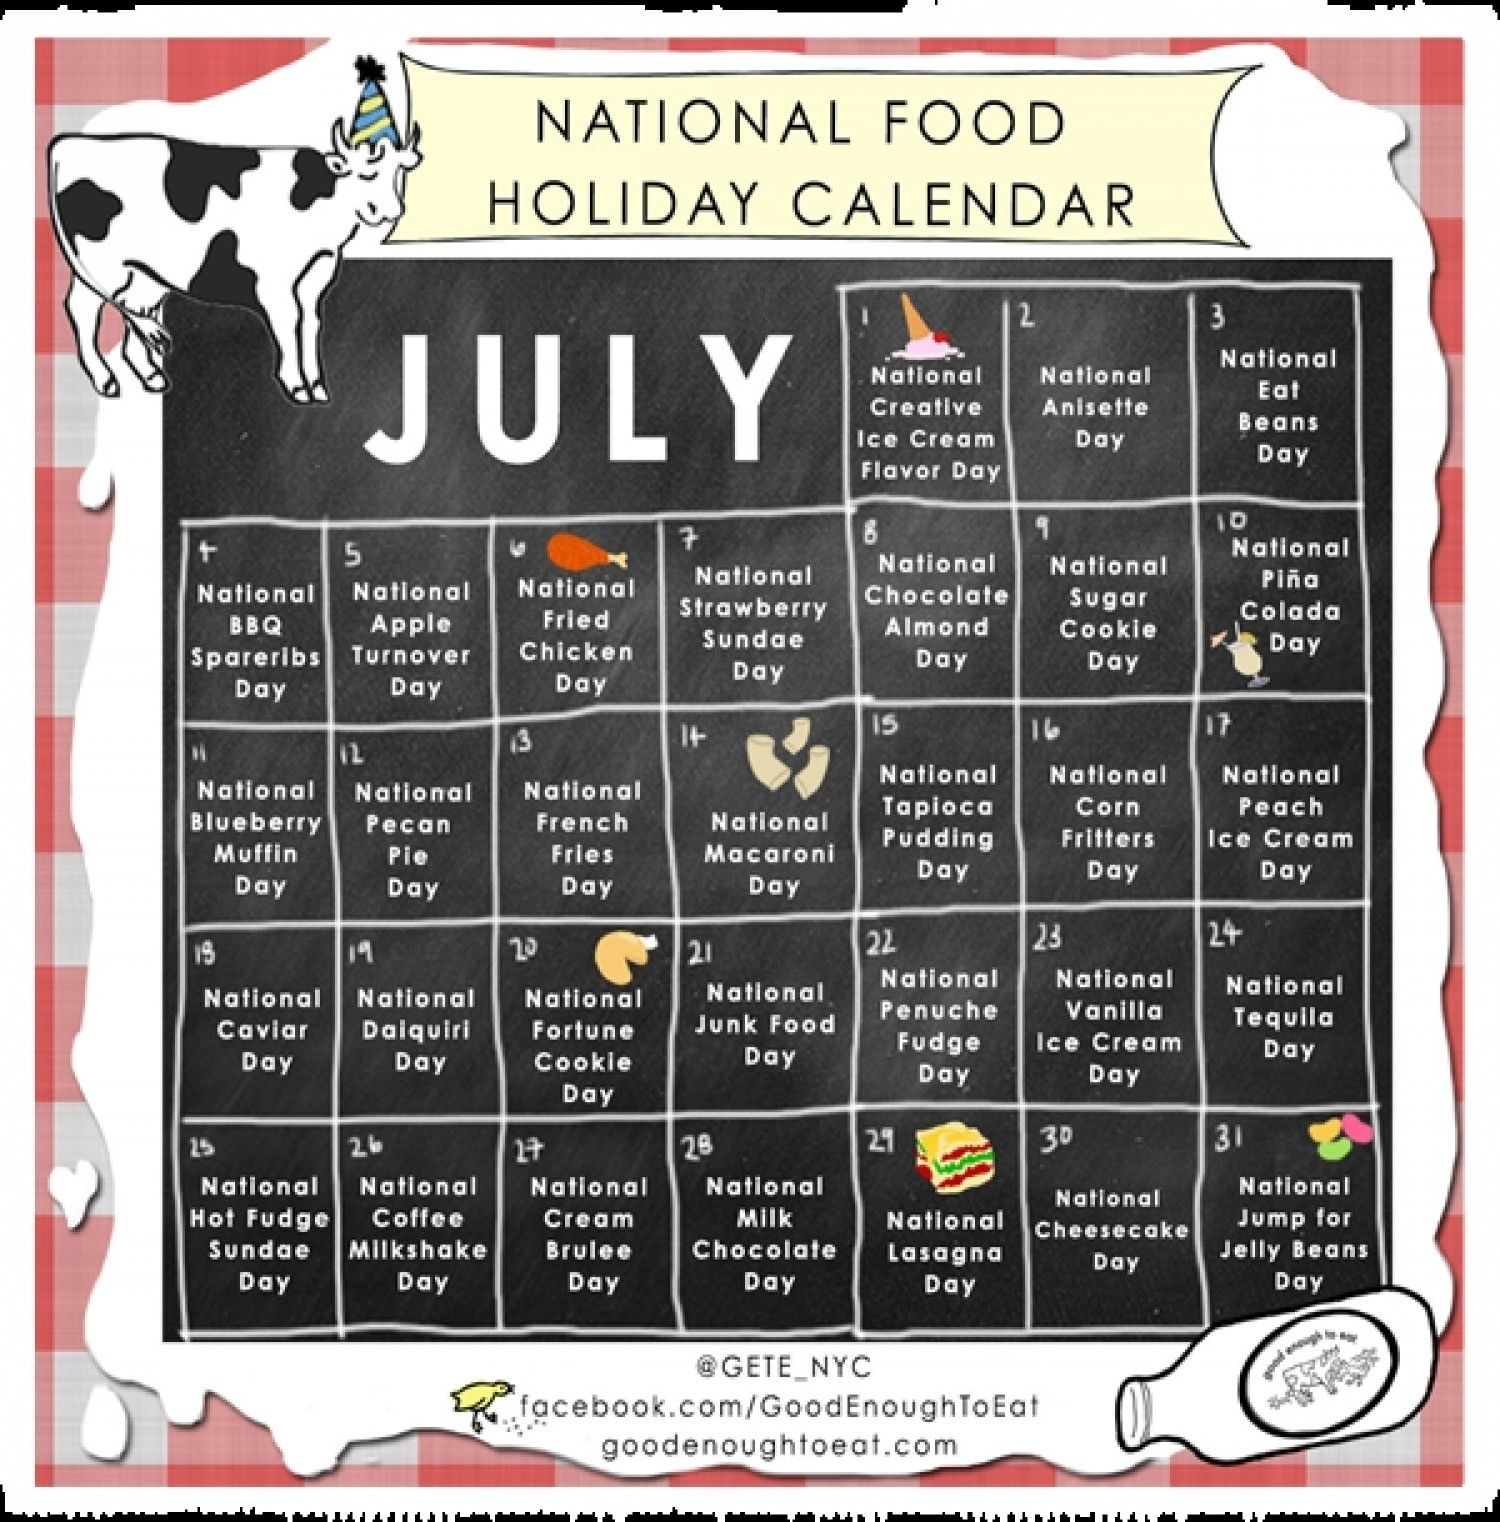 Pinone Table|One World On Recipes Galore! | National Food Day within National Food Day Calendar Printable